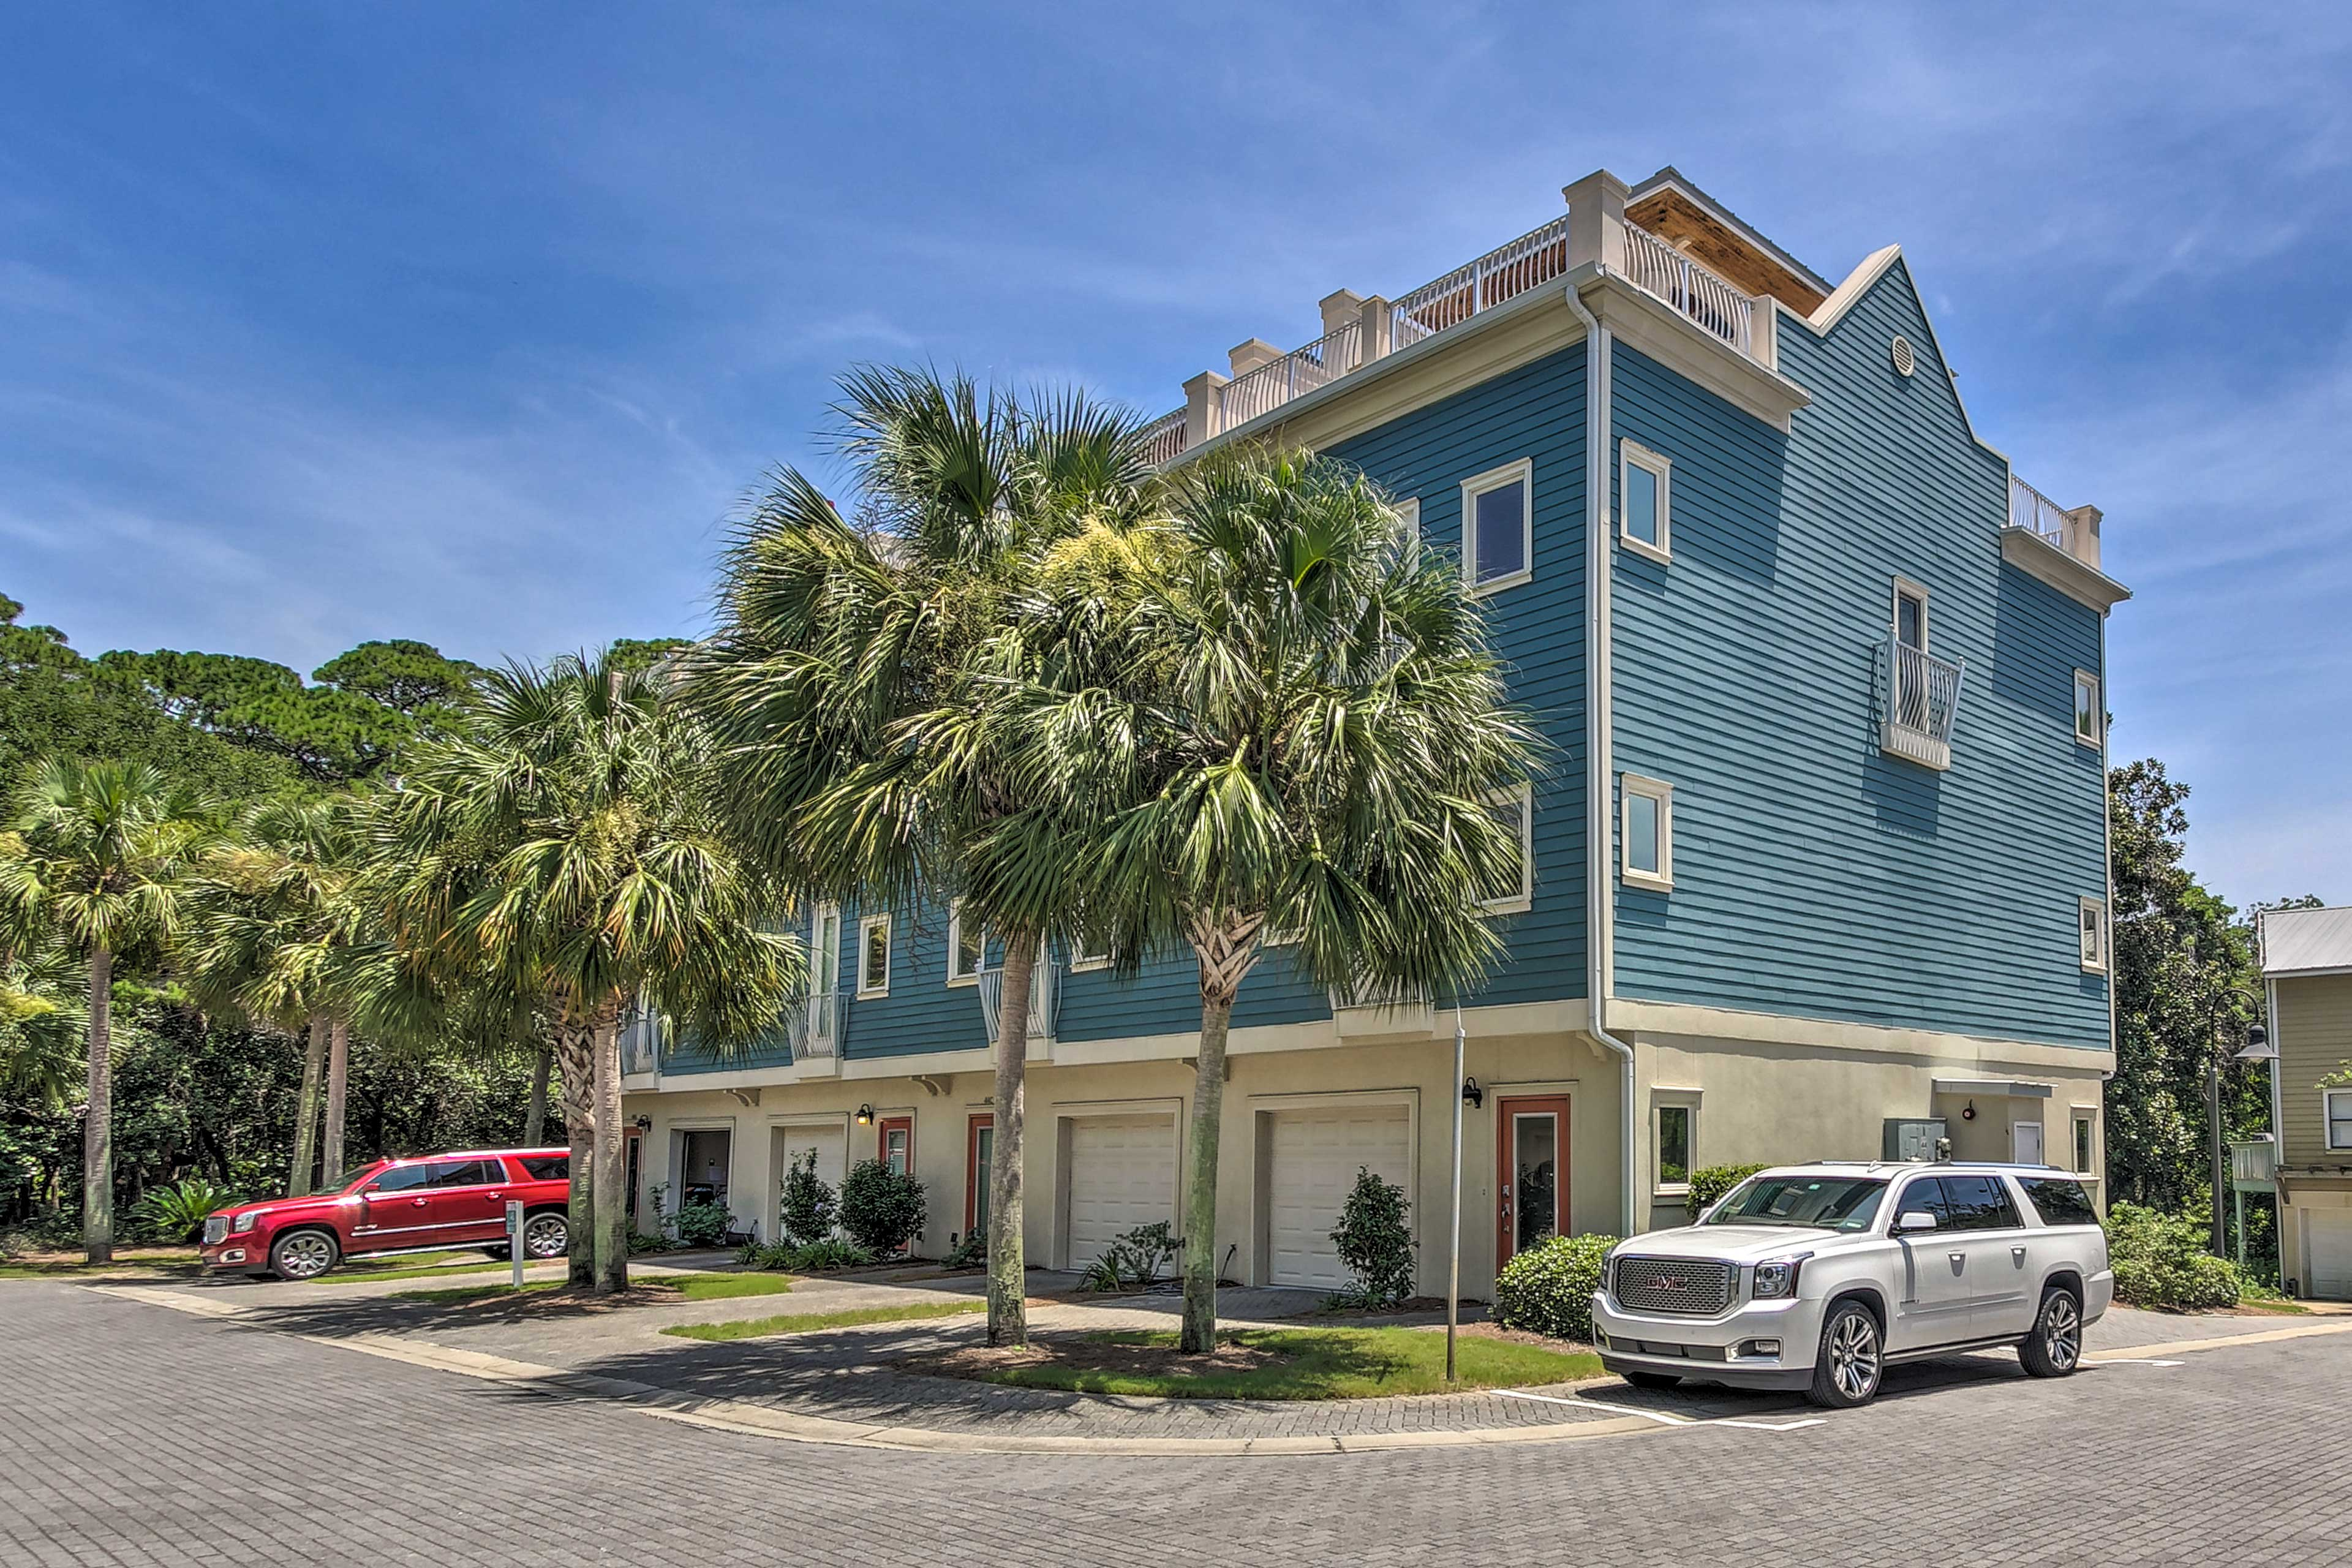 This townhome also features 1 garage and 1 driveway parking spot.